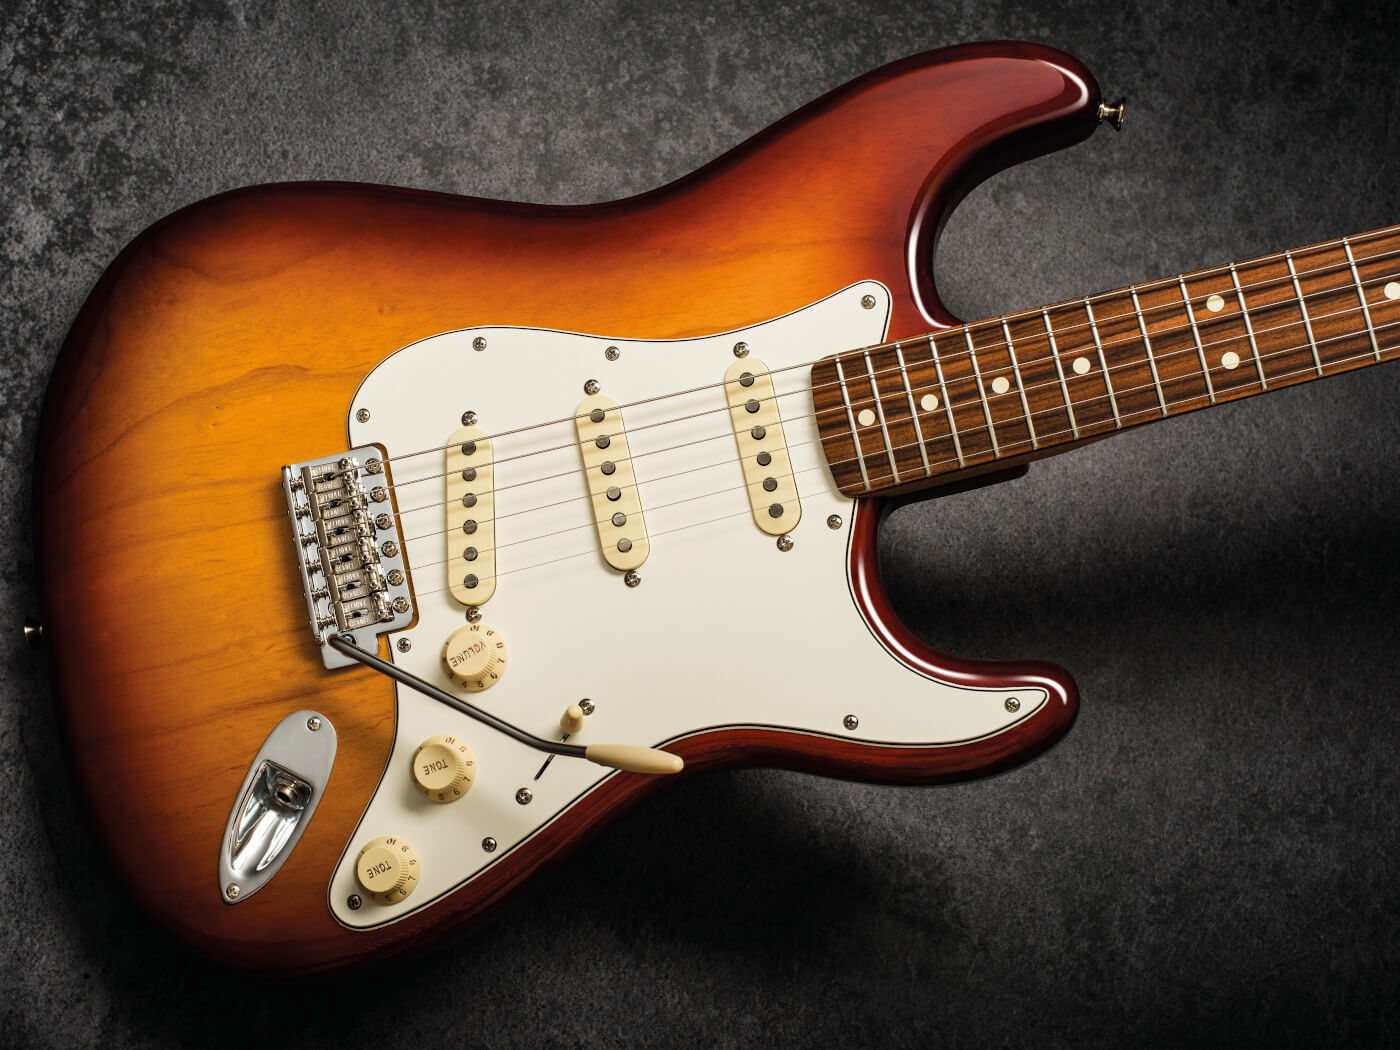 Fender Vintera 70s Strat sunburst finish style shot